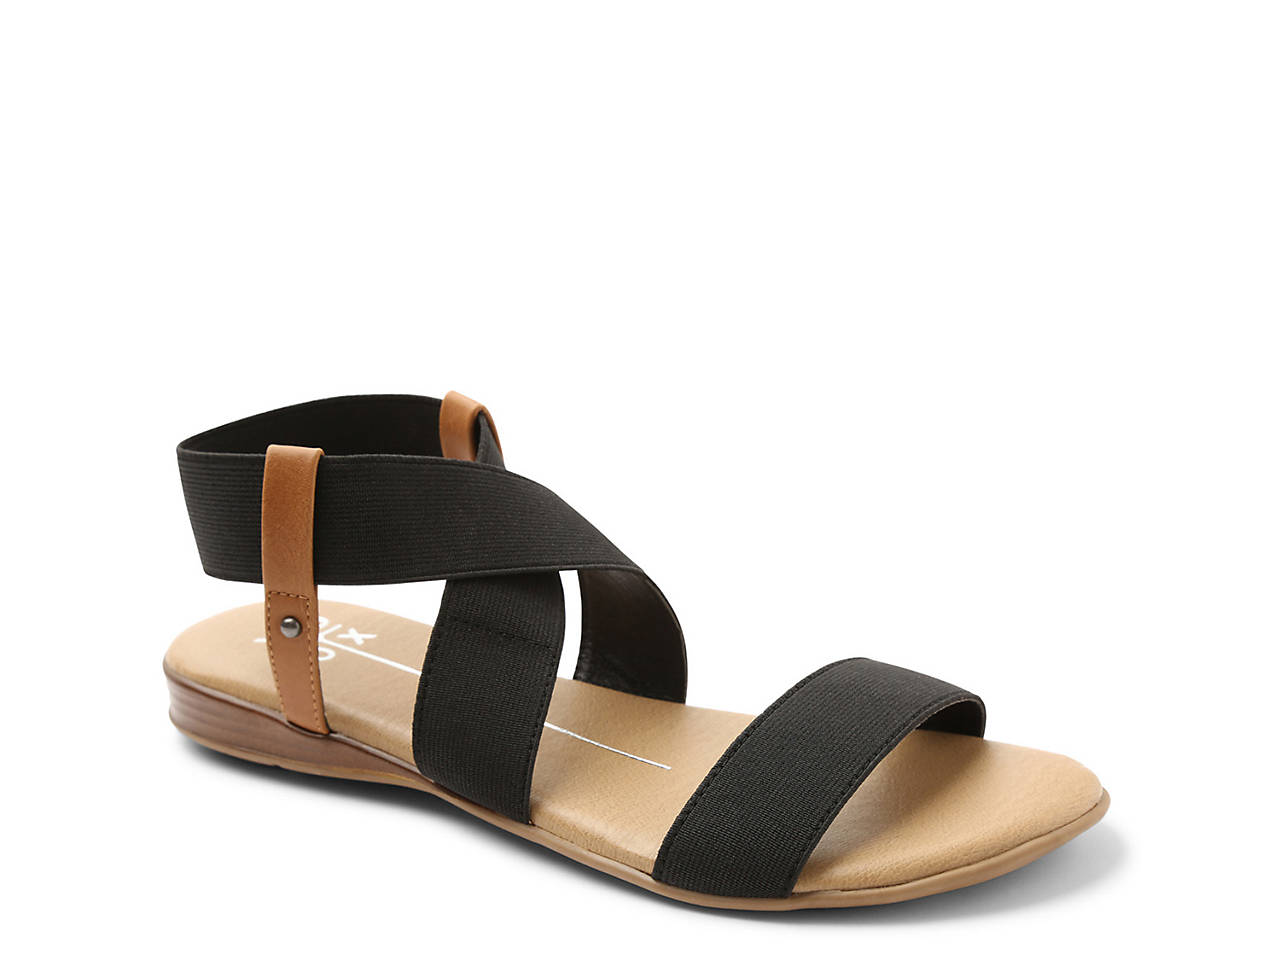 5dac5acfb0 XOXO Bailor Sandal Women's Shoes | DSW